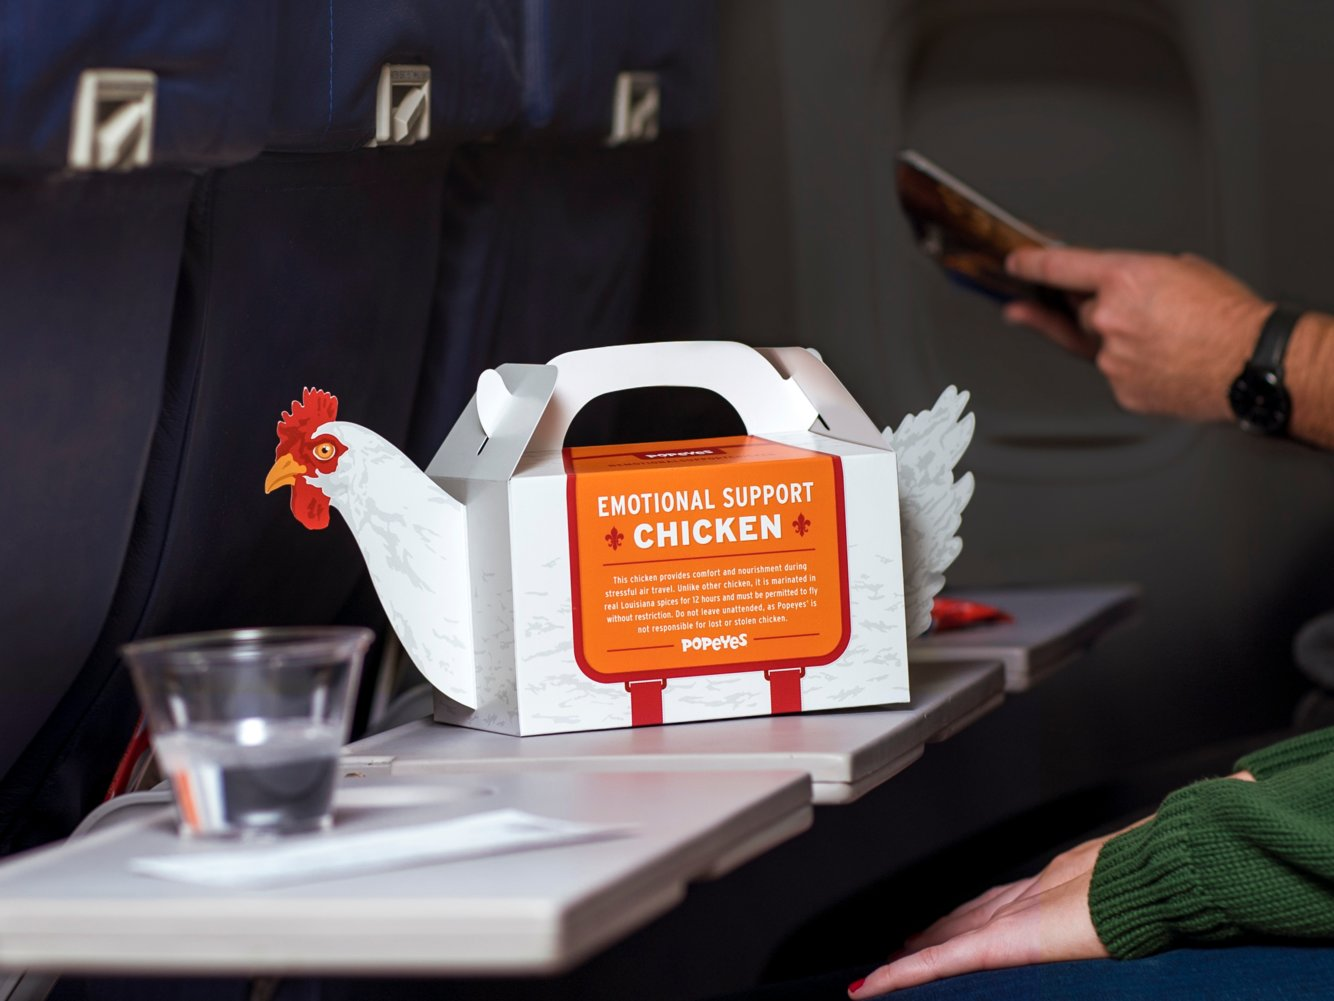 Popeyes is launching 'Emotional Support Chicken' for stressed travelers craving fried chicken